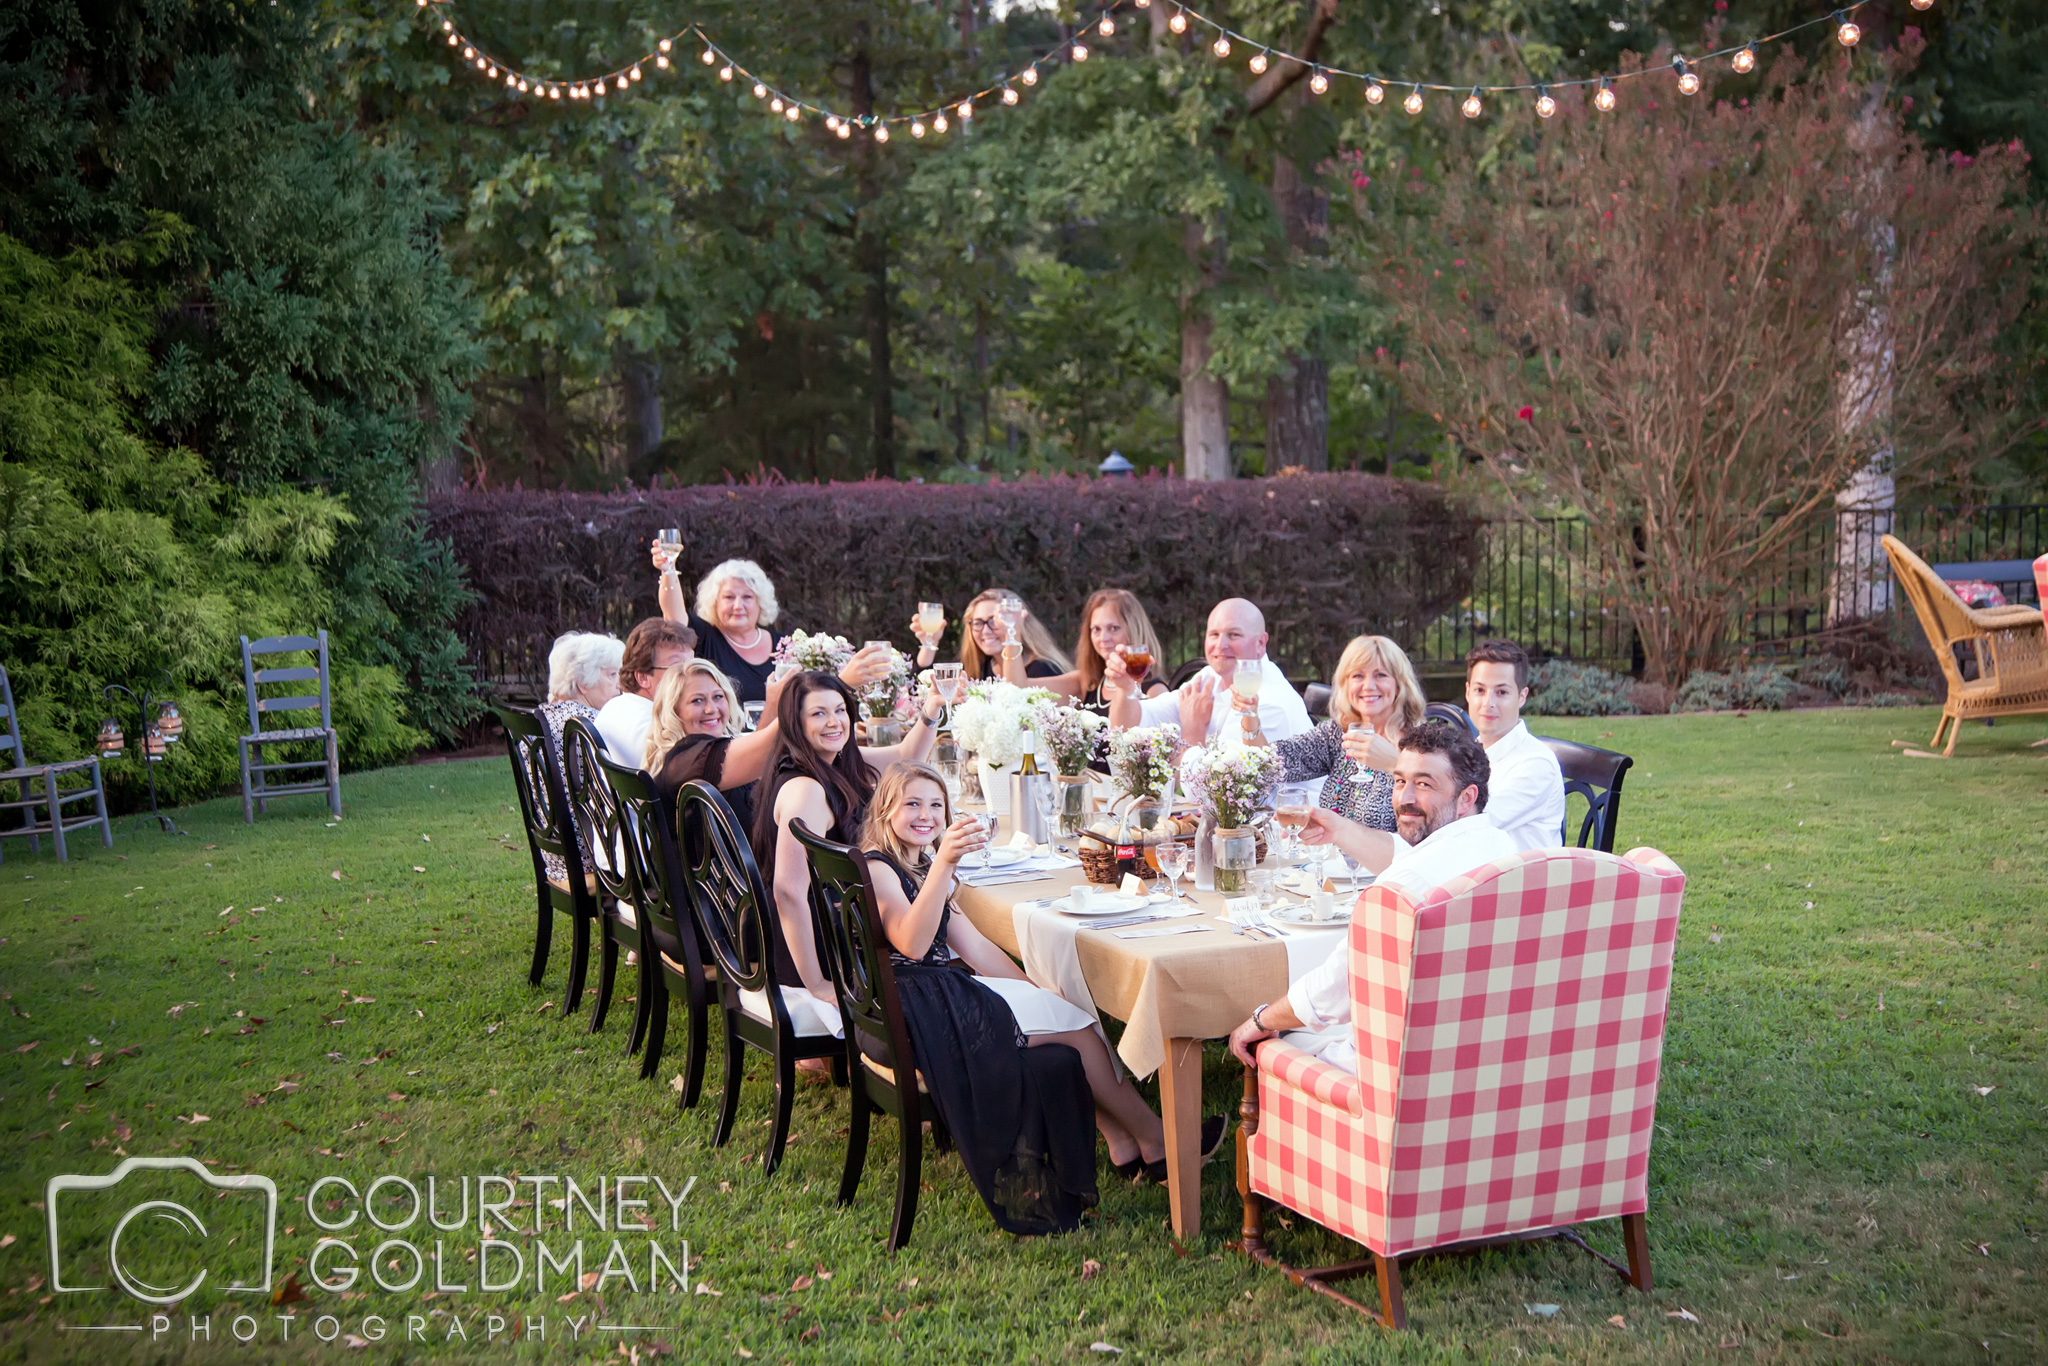 Backyard-Summer-Dinner-Birthday-in-Georgia-with-A-Divine-Event-by-Courtney-Goldman-Photography-09.jpg